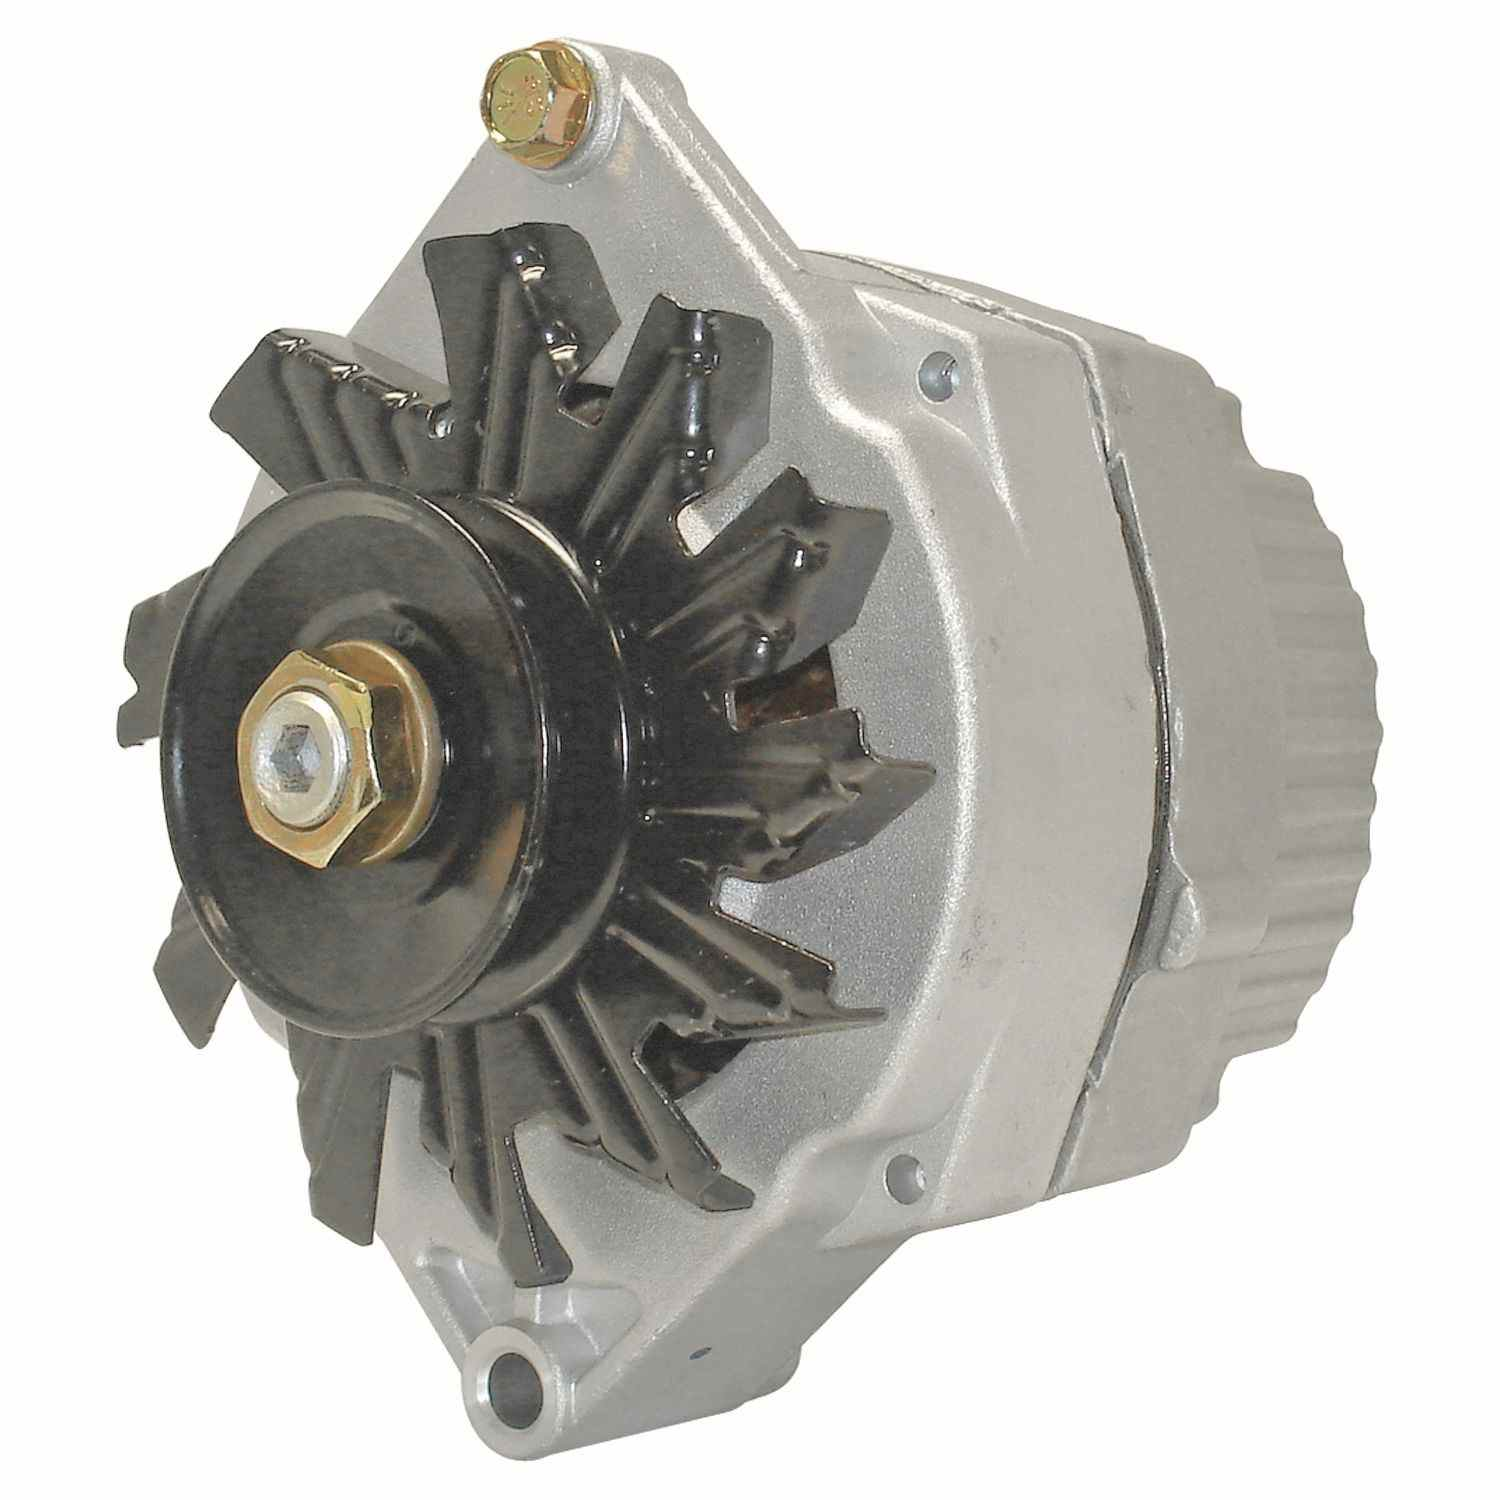 ACDELCO GOLD/PROFESSIONAL - Reman Alternator - DCC 334-2112A